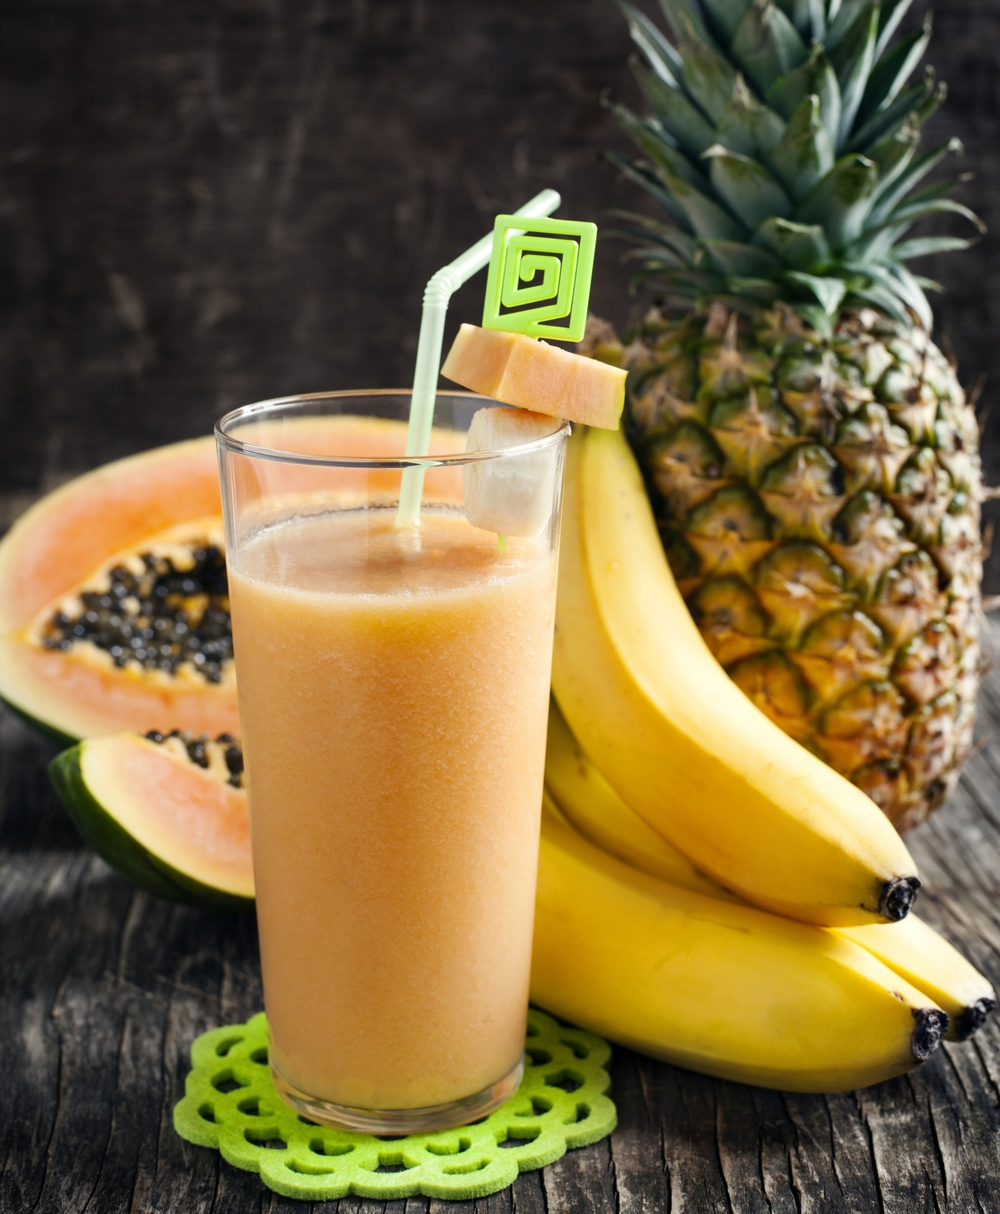 Post-workout banana-pineapple-papaya smoothie